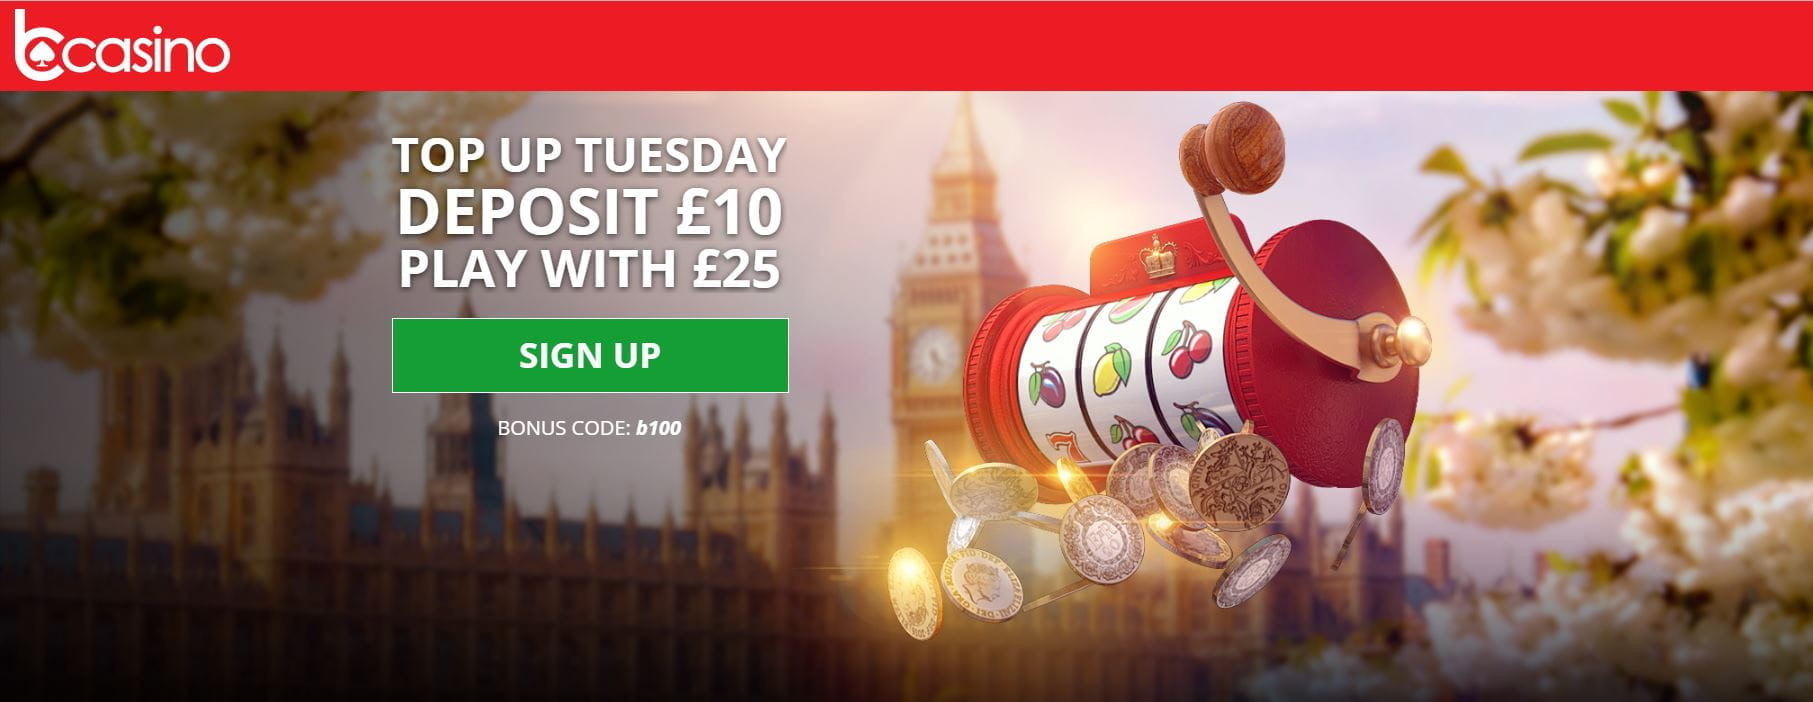 The Top Up Tuesday bonus deal from bCasino.